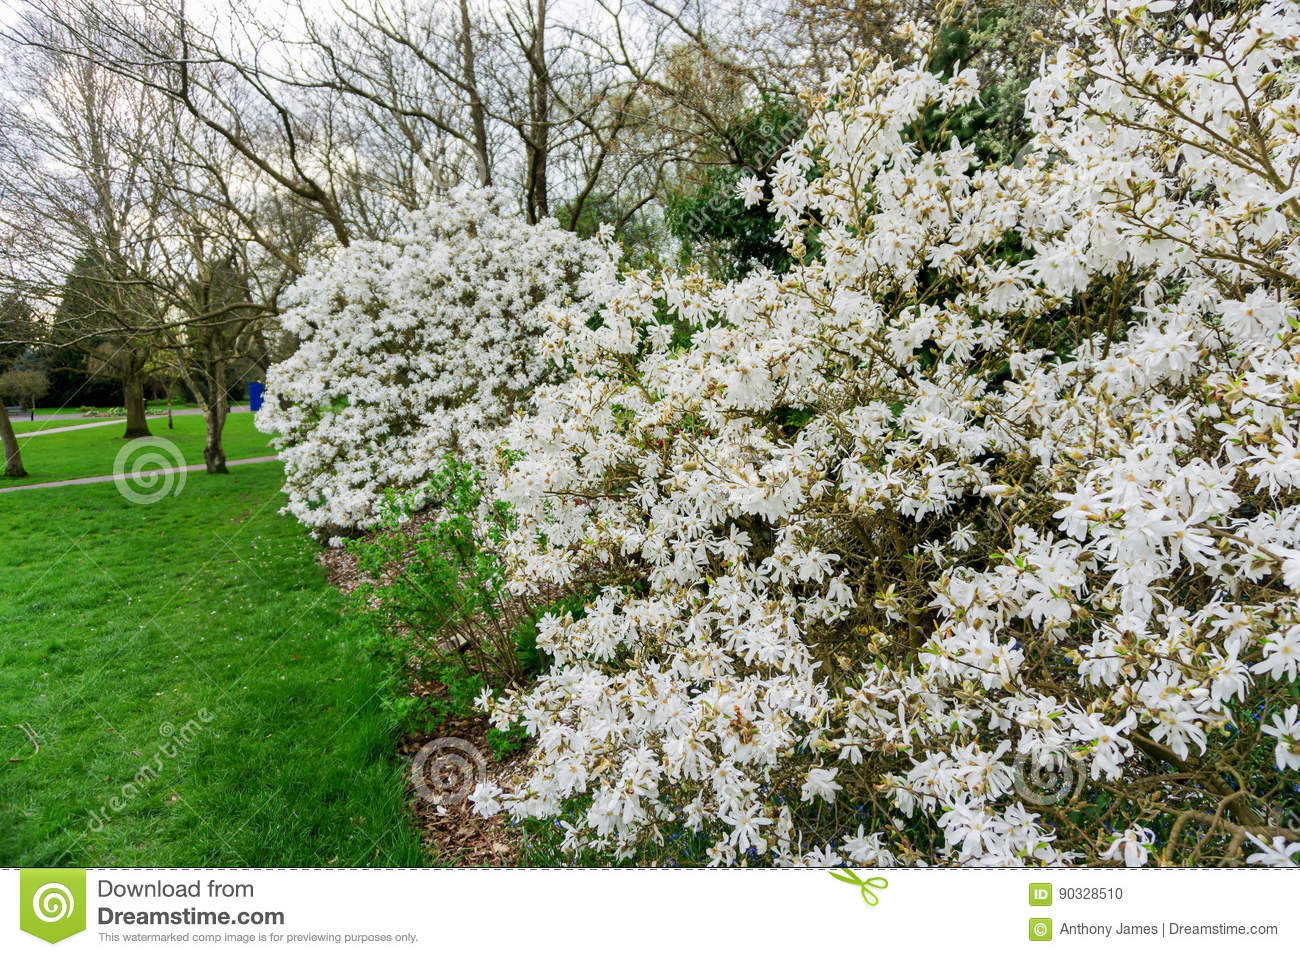 Magnolia White Flowers On A Tree In A Park In The Countryside Stock